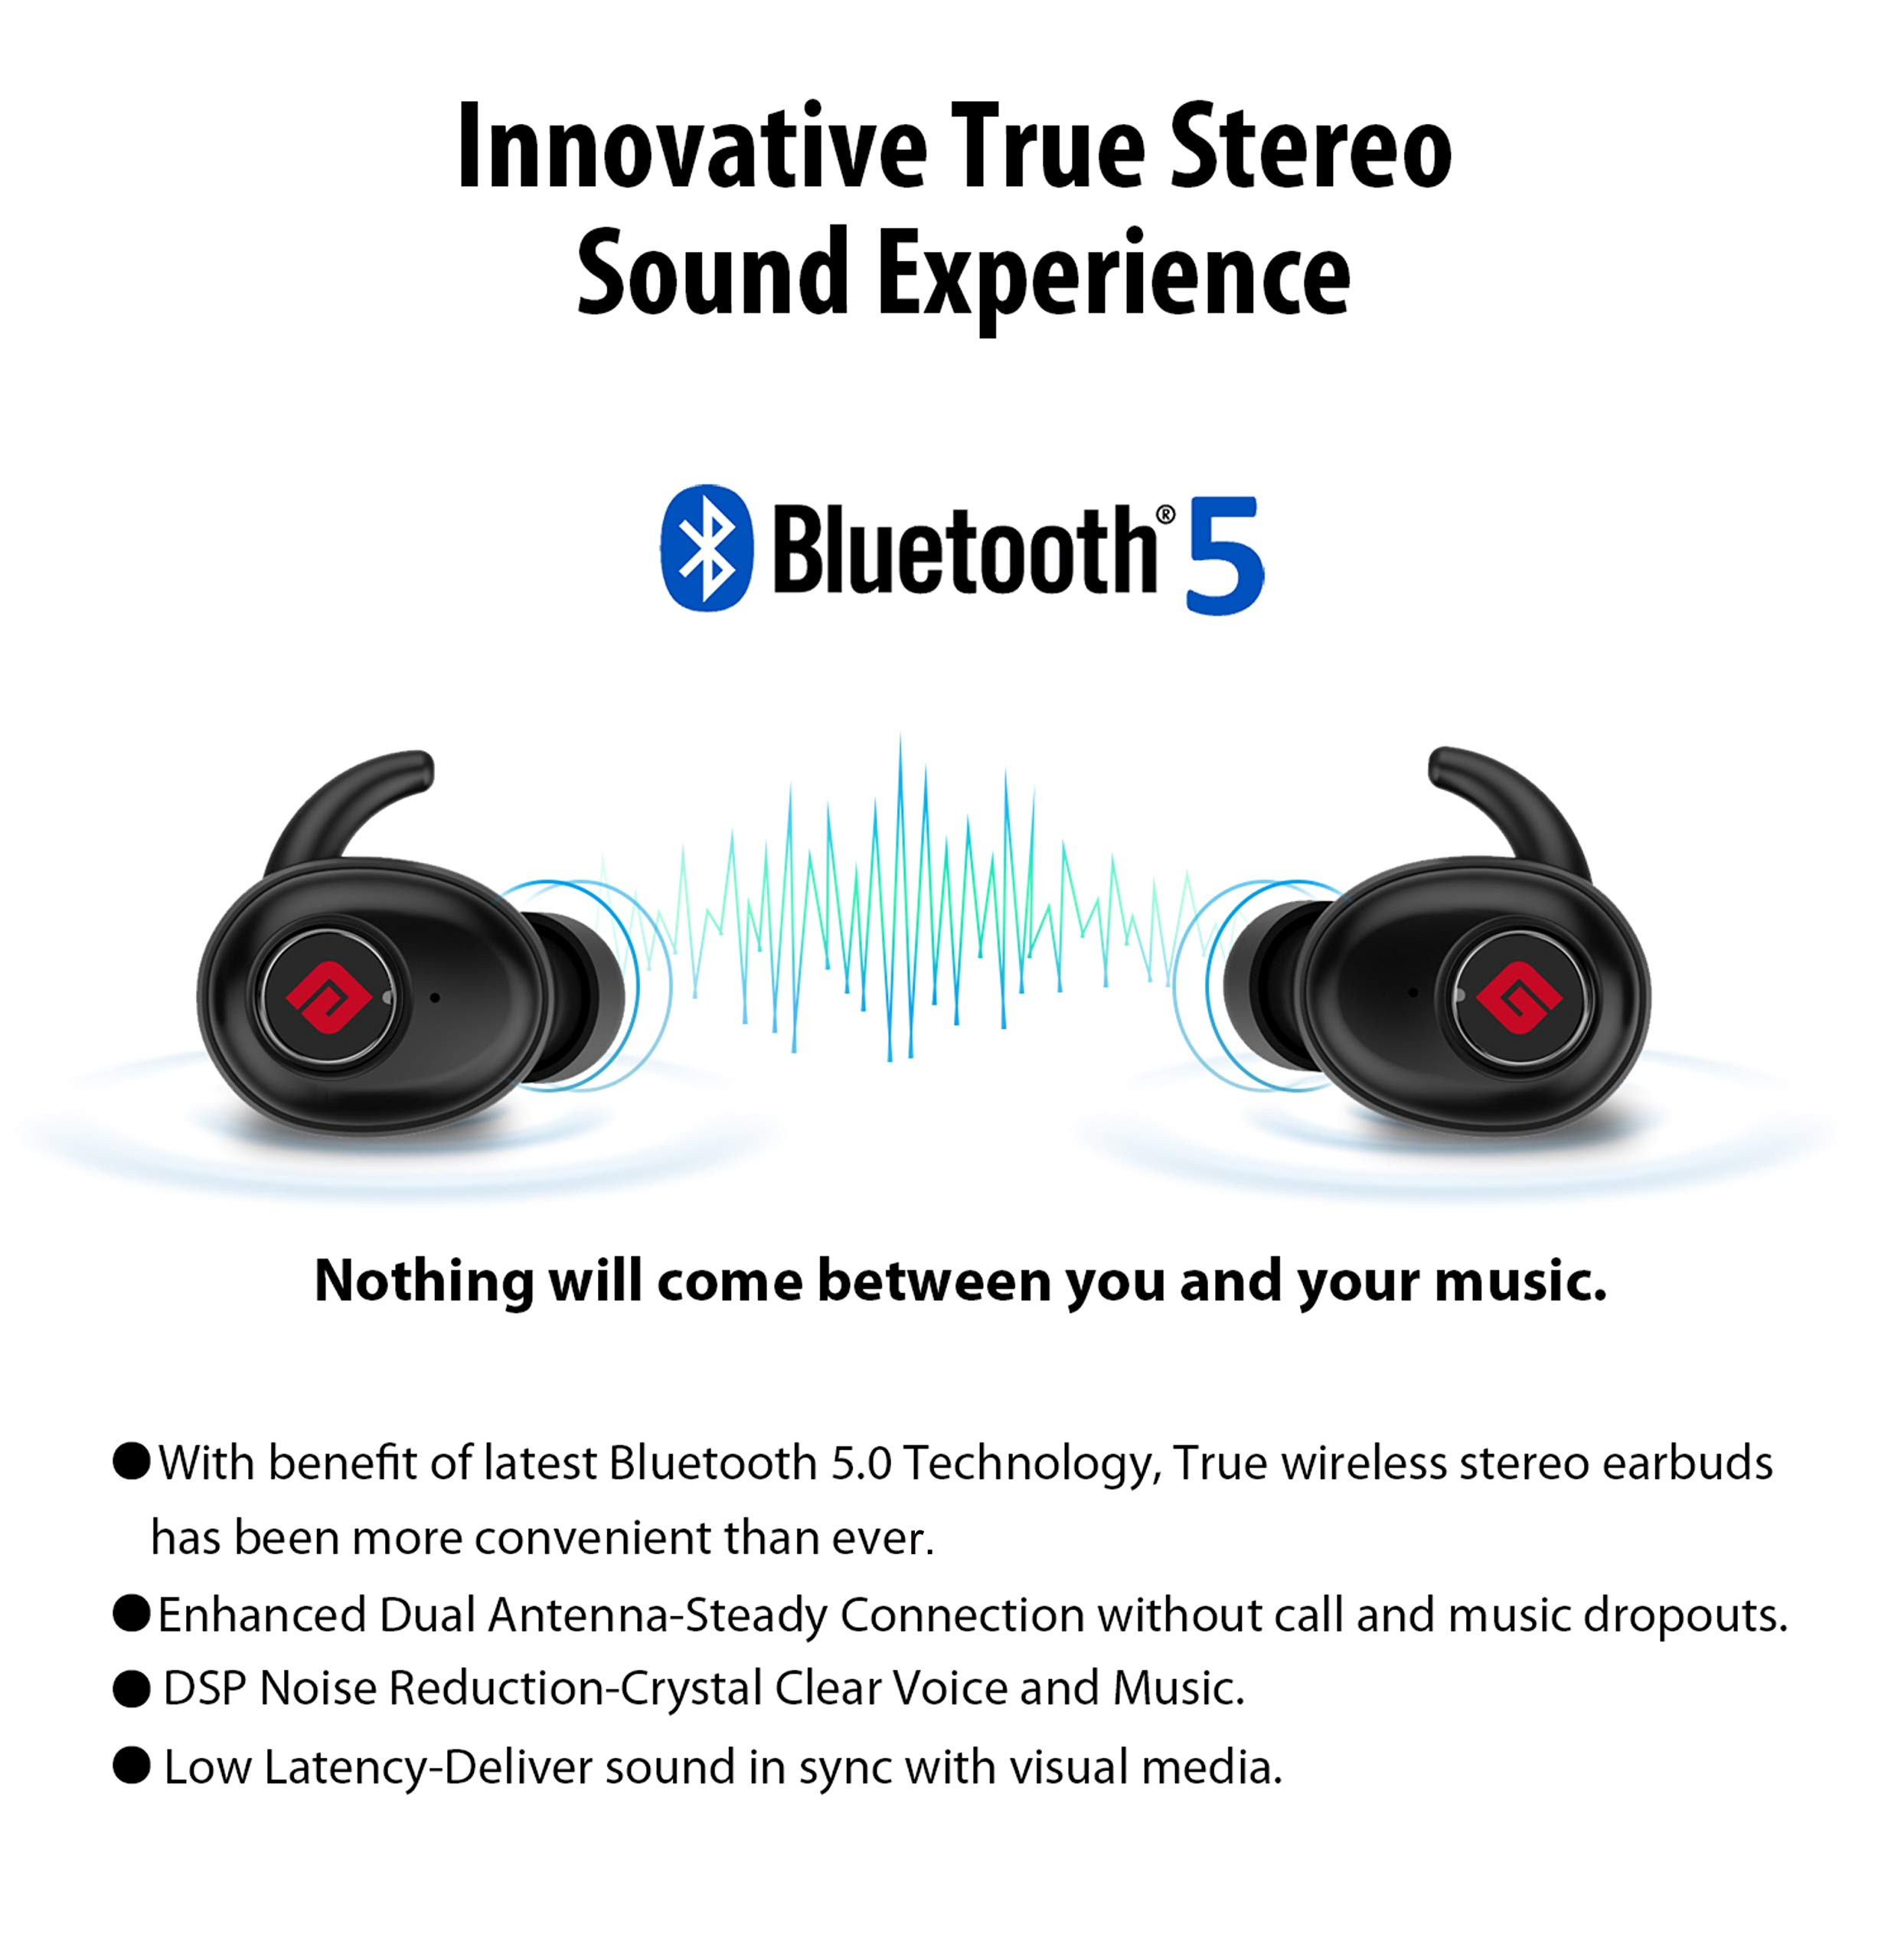 True Wireless Earbuds Bluetooth 5.0 Headphones, Sports in-Ear TWS Stereo Mini Headset w/Mic Extra Bass IPX5 Waterproof Low Latency Instant Pairing 15H Battery Charging Case Noise Cancelling Earphones by Geekee (Image #2)